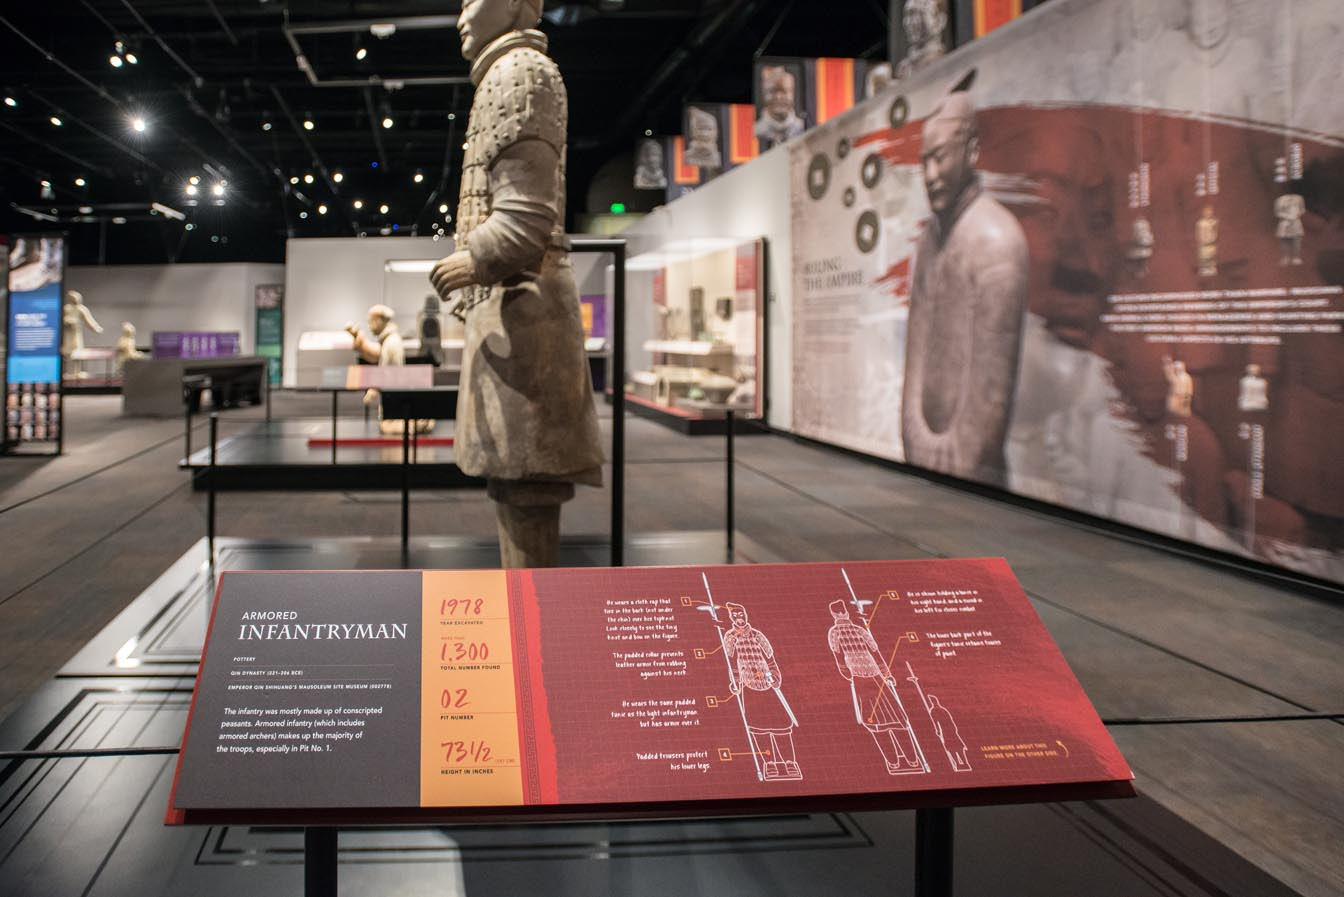 Final install of the Terracotta Warrior platform and exhibit graphics